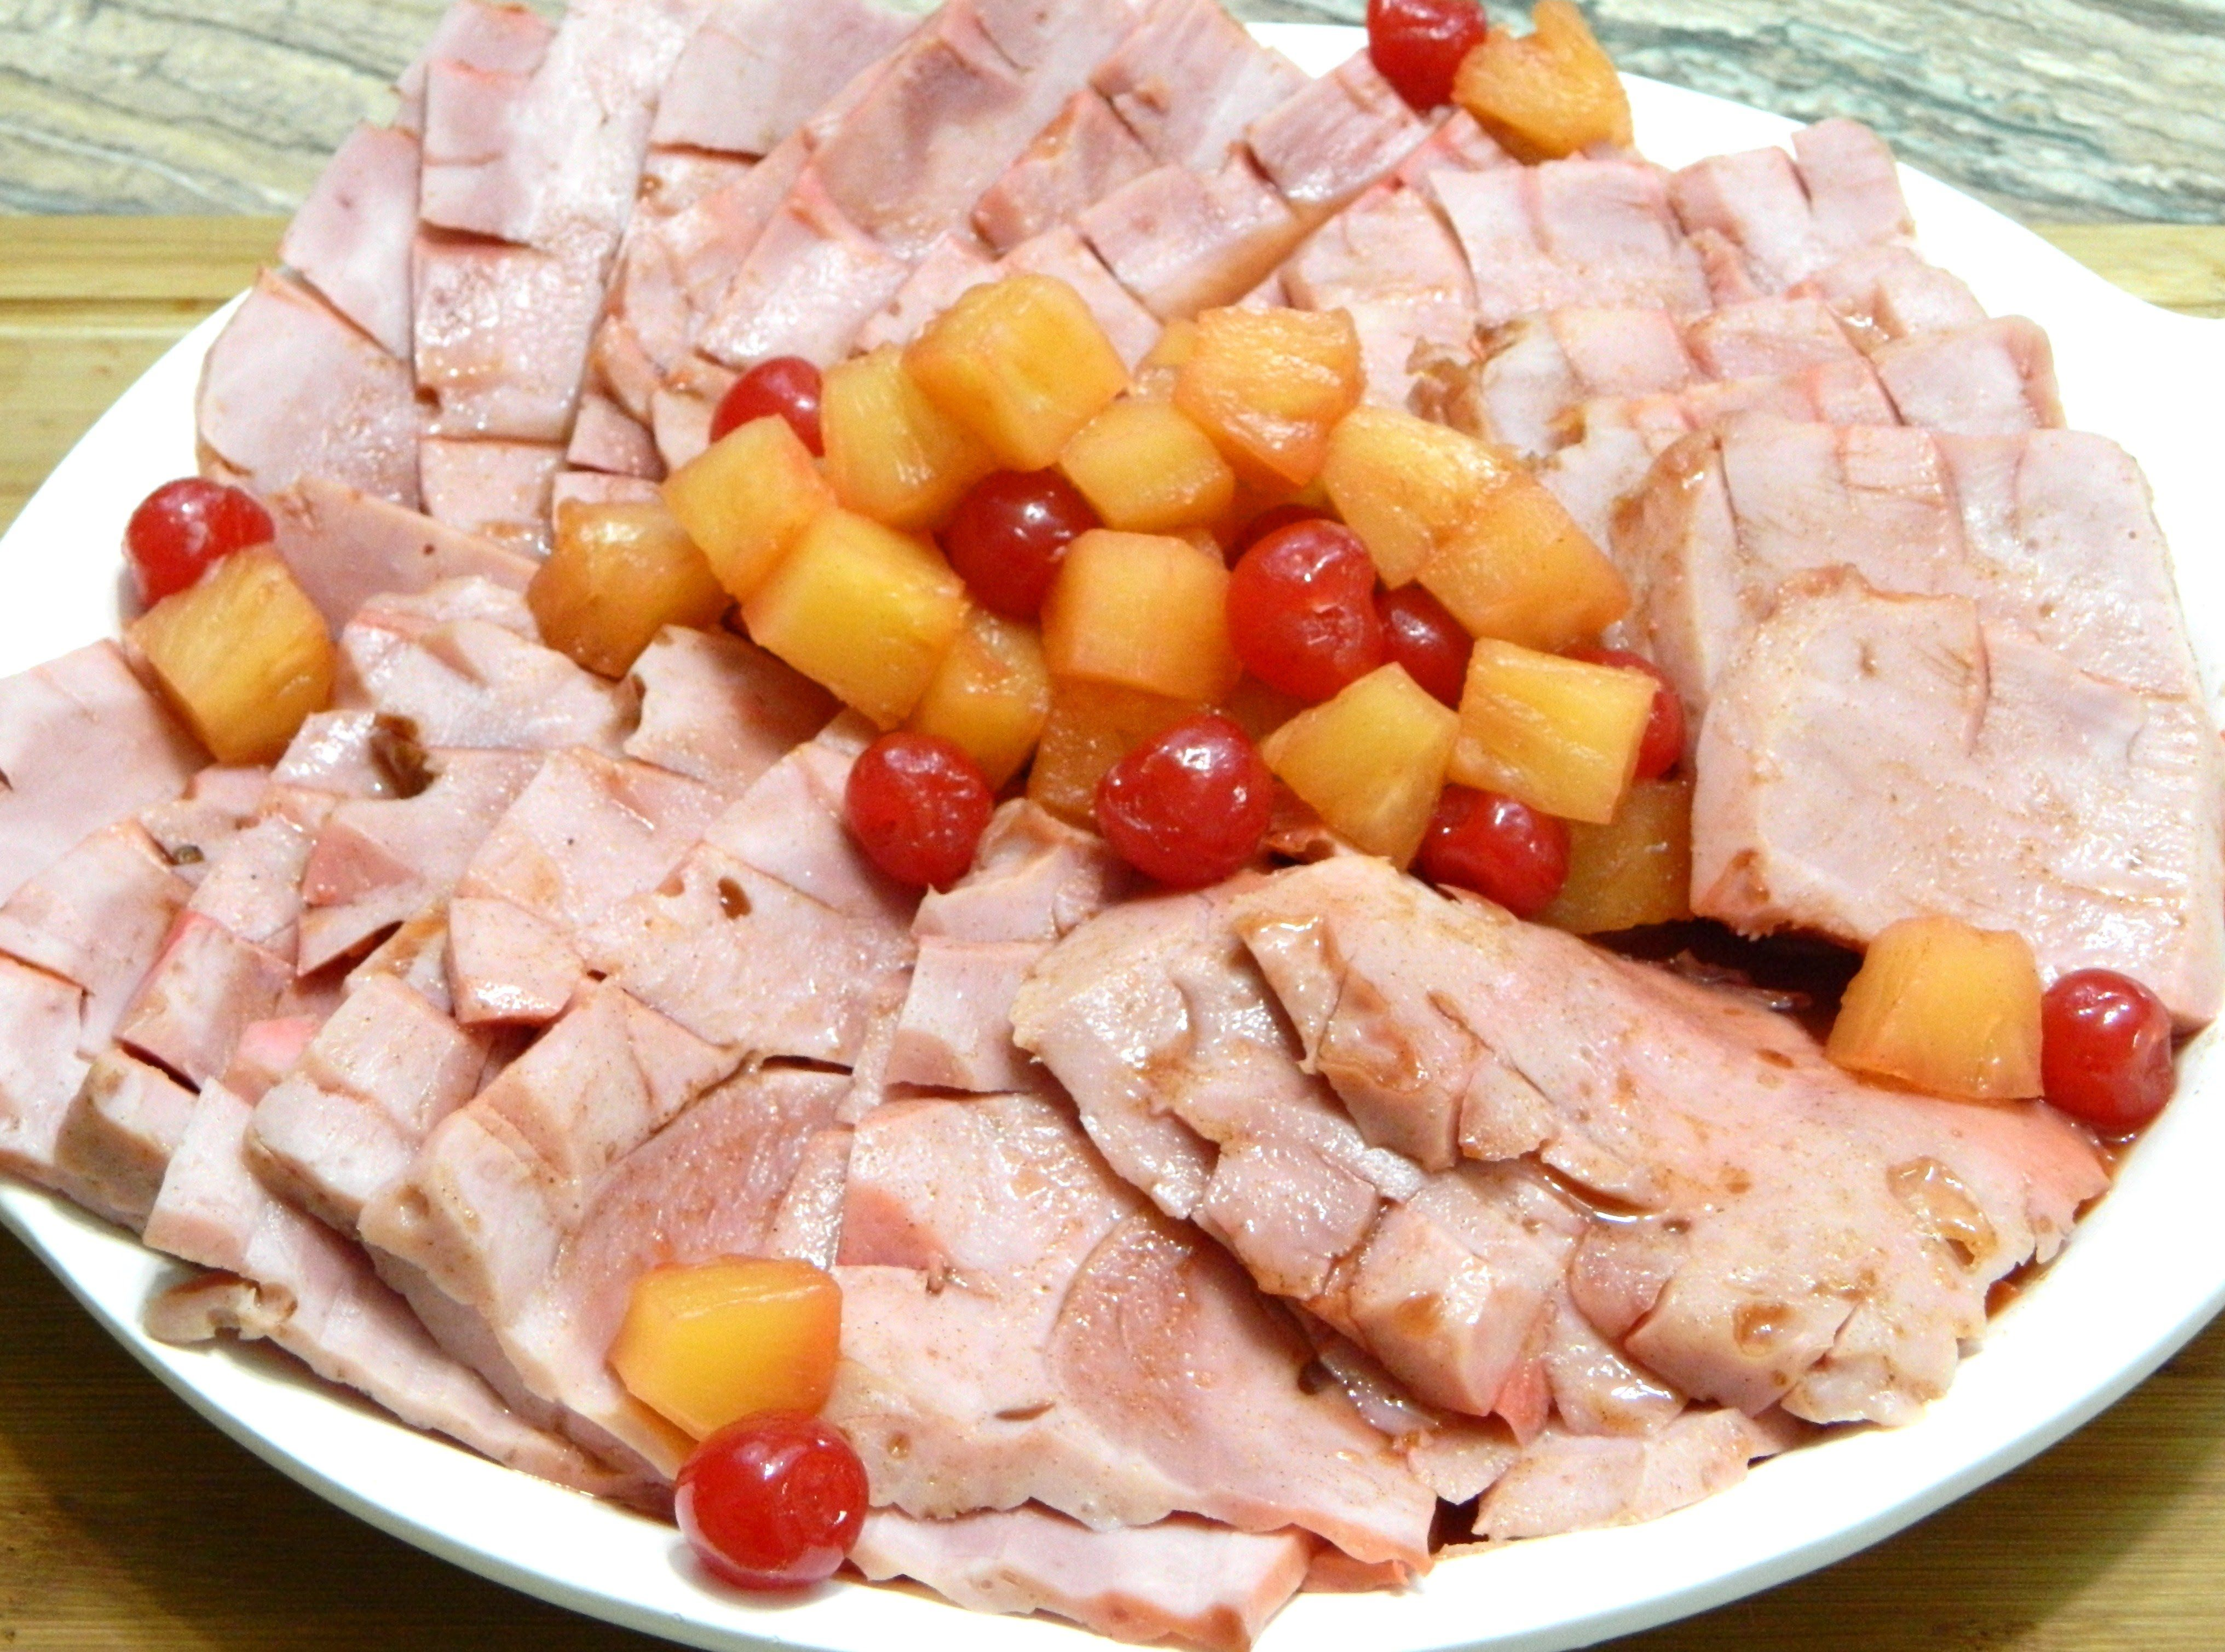 Puerto rican style jamon con pia or baked ham with pineapple puerto rican style jamon con pia or baked ham with pineapple forumfinder Image collections